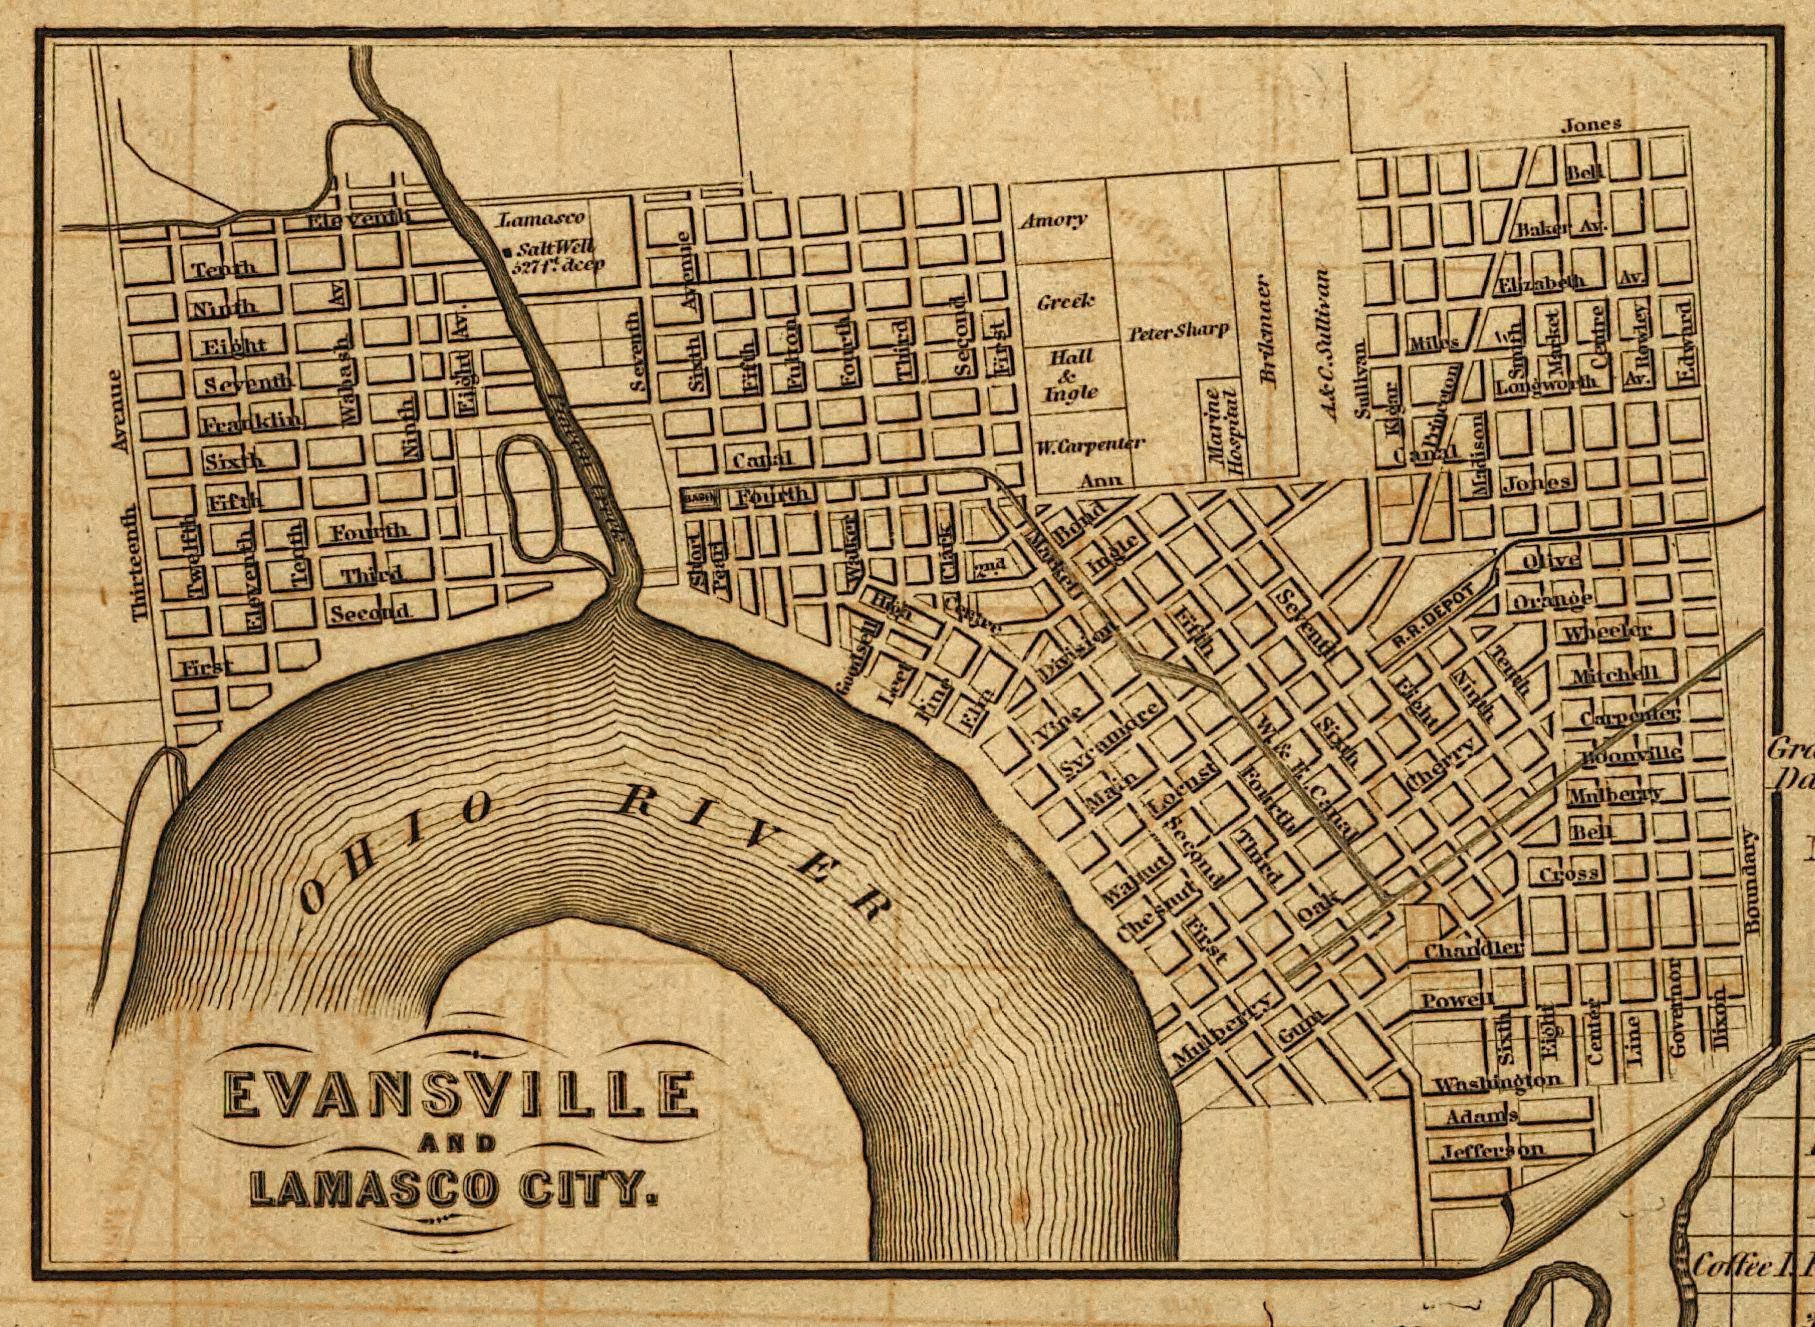 Historic Evansville - Maps on indiana maps and directions, indiana richmond map, hamilton county indiana map, indiana landscape map, indiana white map, indiana map with cities, indiana building map, indiana people map, andrews indiana map, indiana court map, indiana freeway map, indiana sports map, shipshewana indiana map, indiana locality map, indiana parcel map, indiana lakes map, columbus indiana map, downtown wisconsin dells area map, indiana entertainment, indiana detour map,